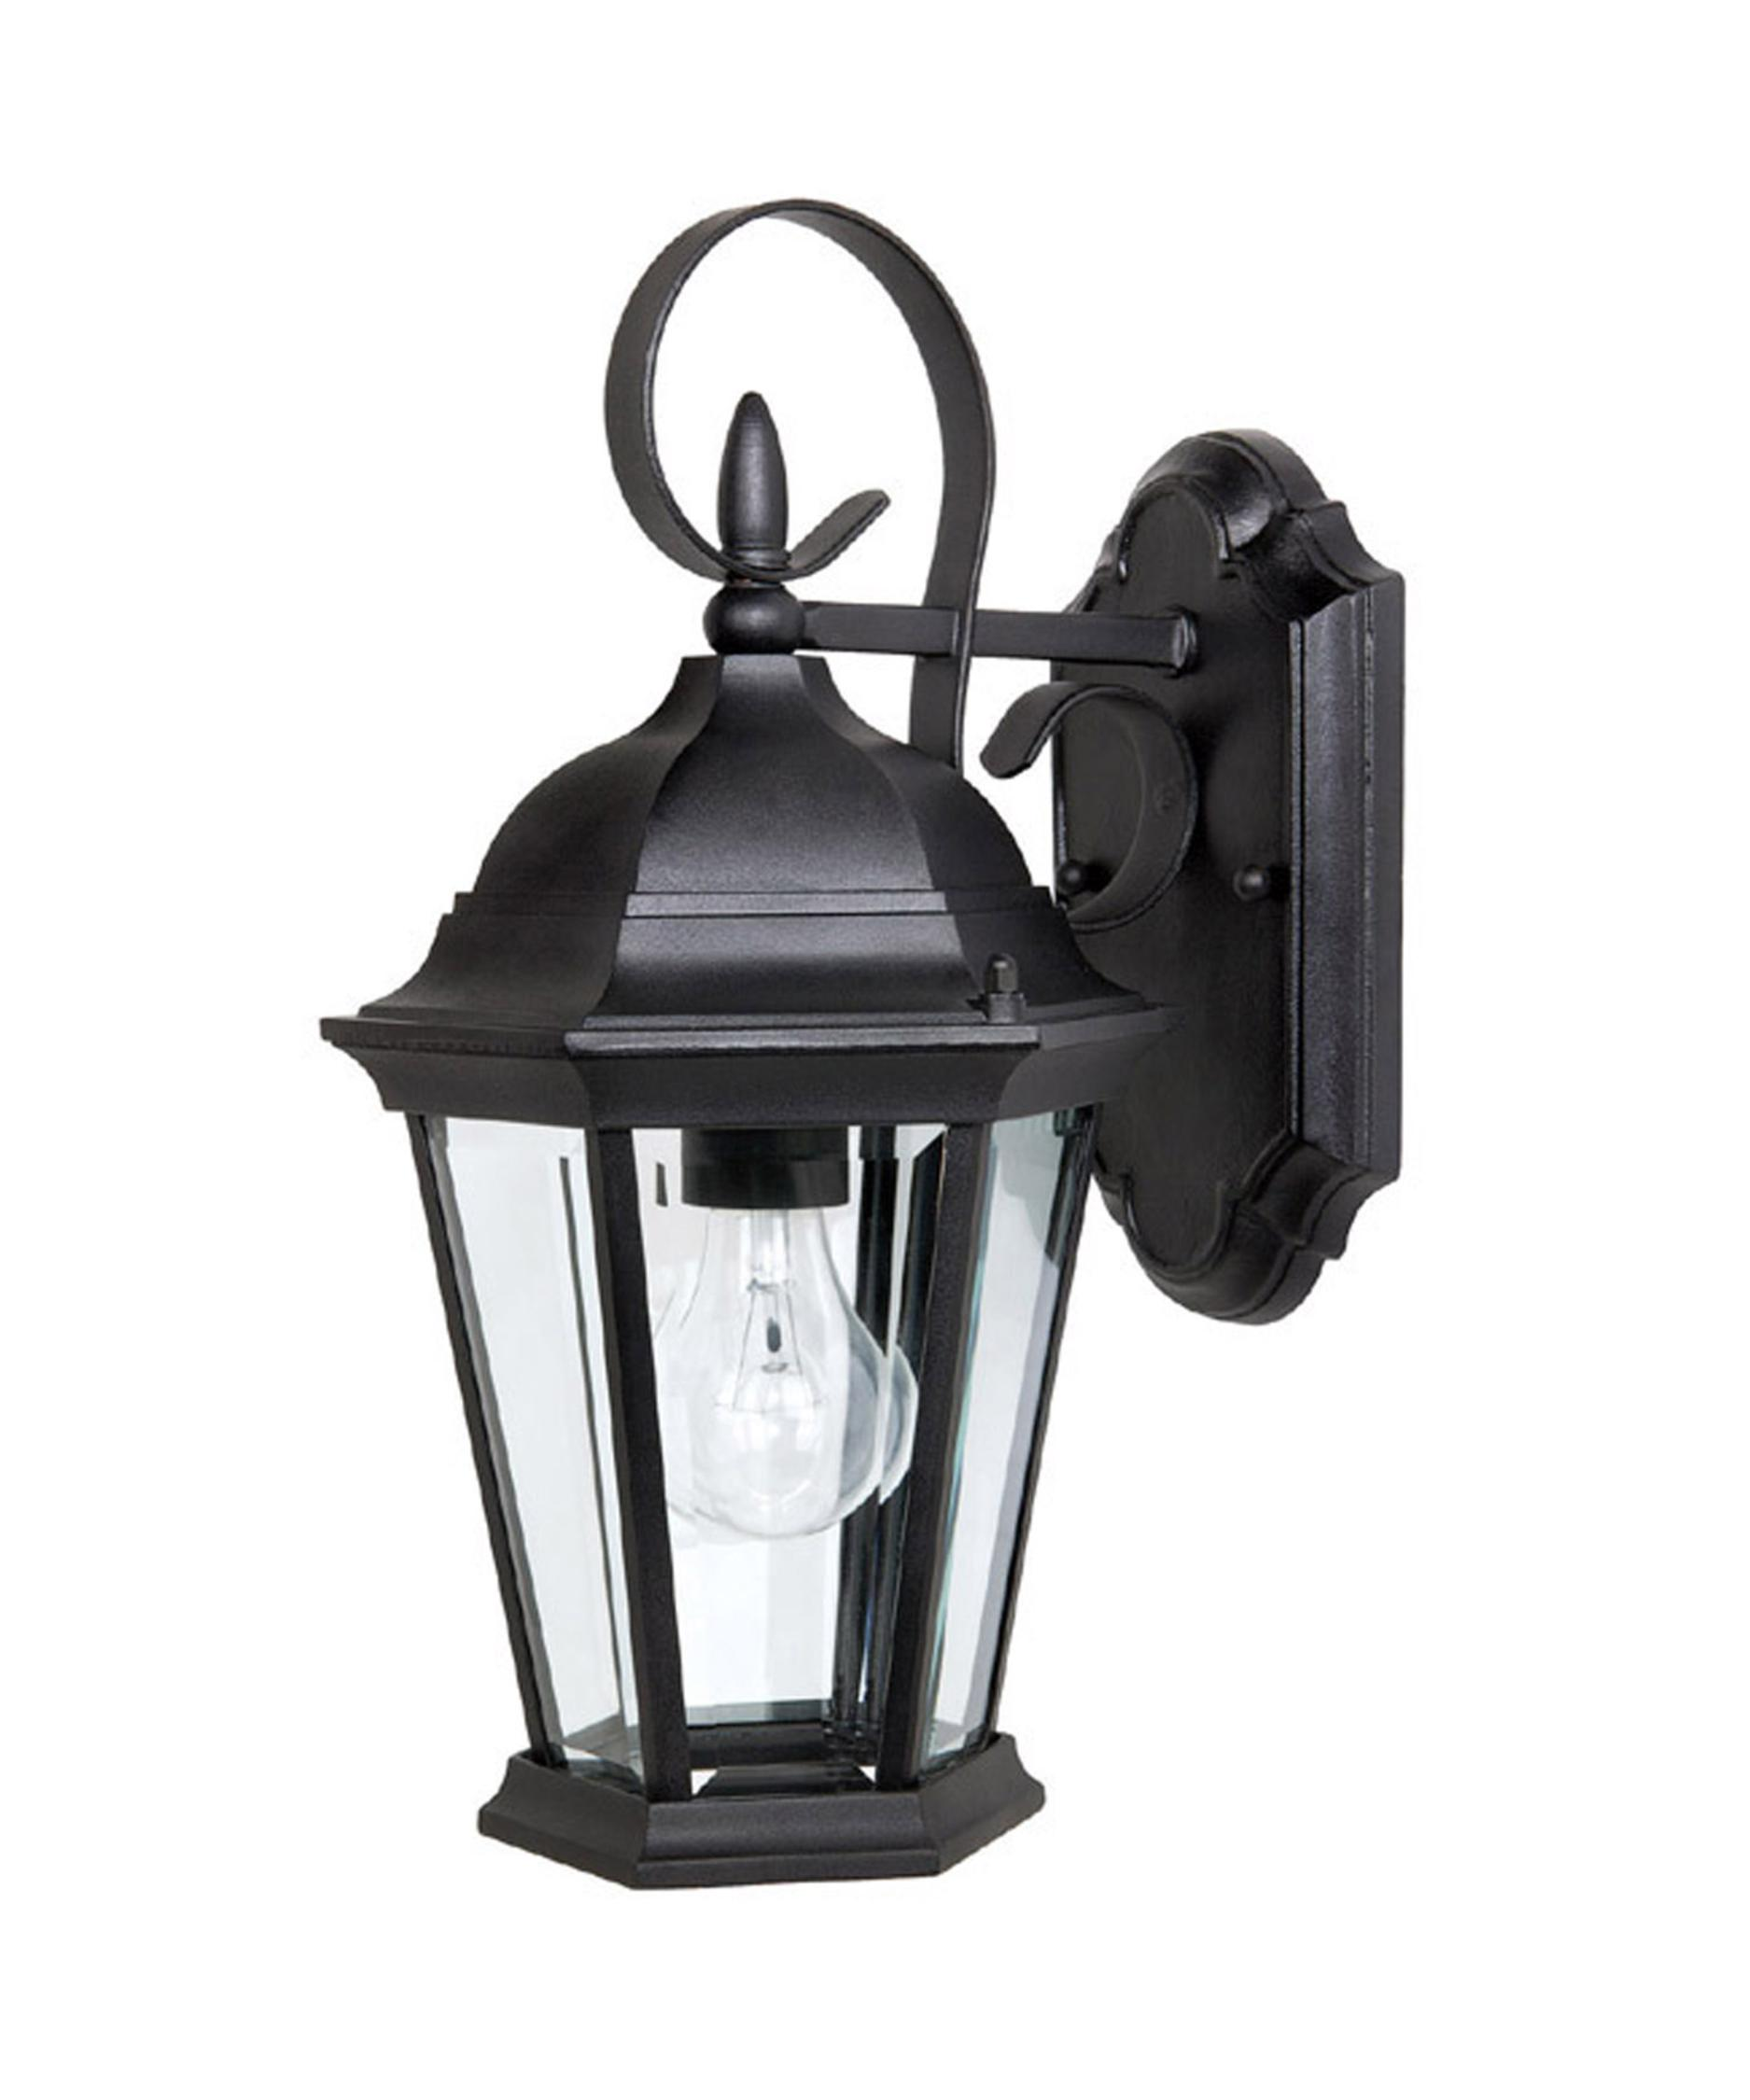 capital lighting carriage house 8 inch wide 1 light outdoor wall light capitol lighting - Capital Lighting